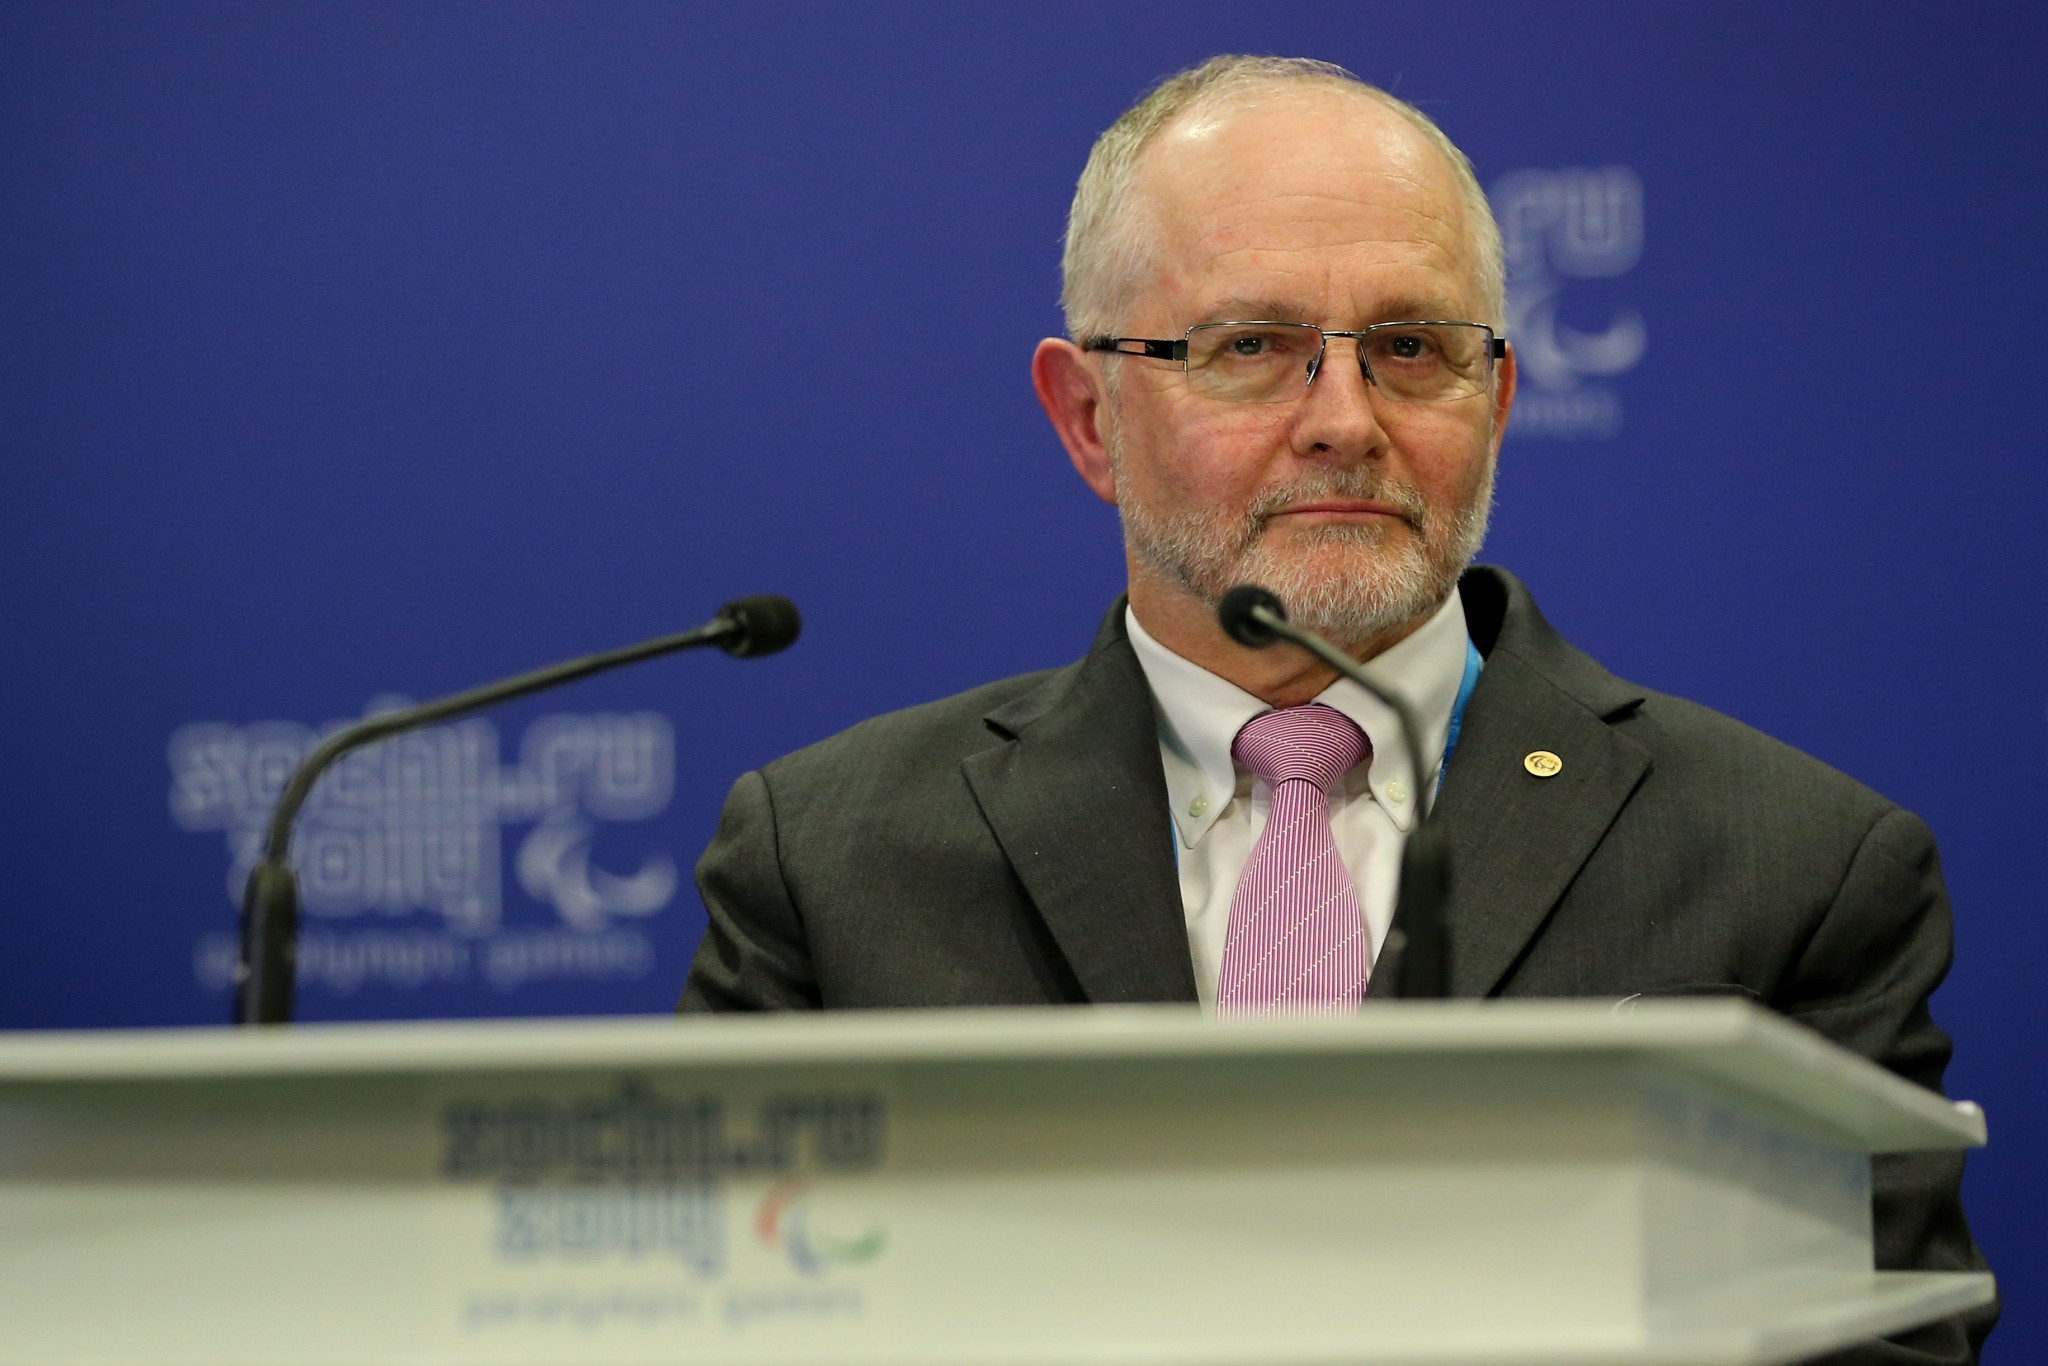 IPC President Sir Philip Craven will deliver a speech at a special event in New York commemorating International Day of Sport for Development and Peace ©Getty Images